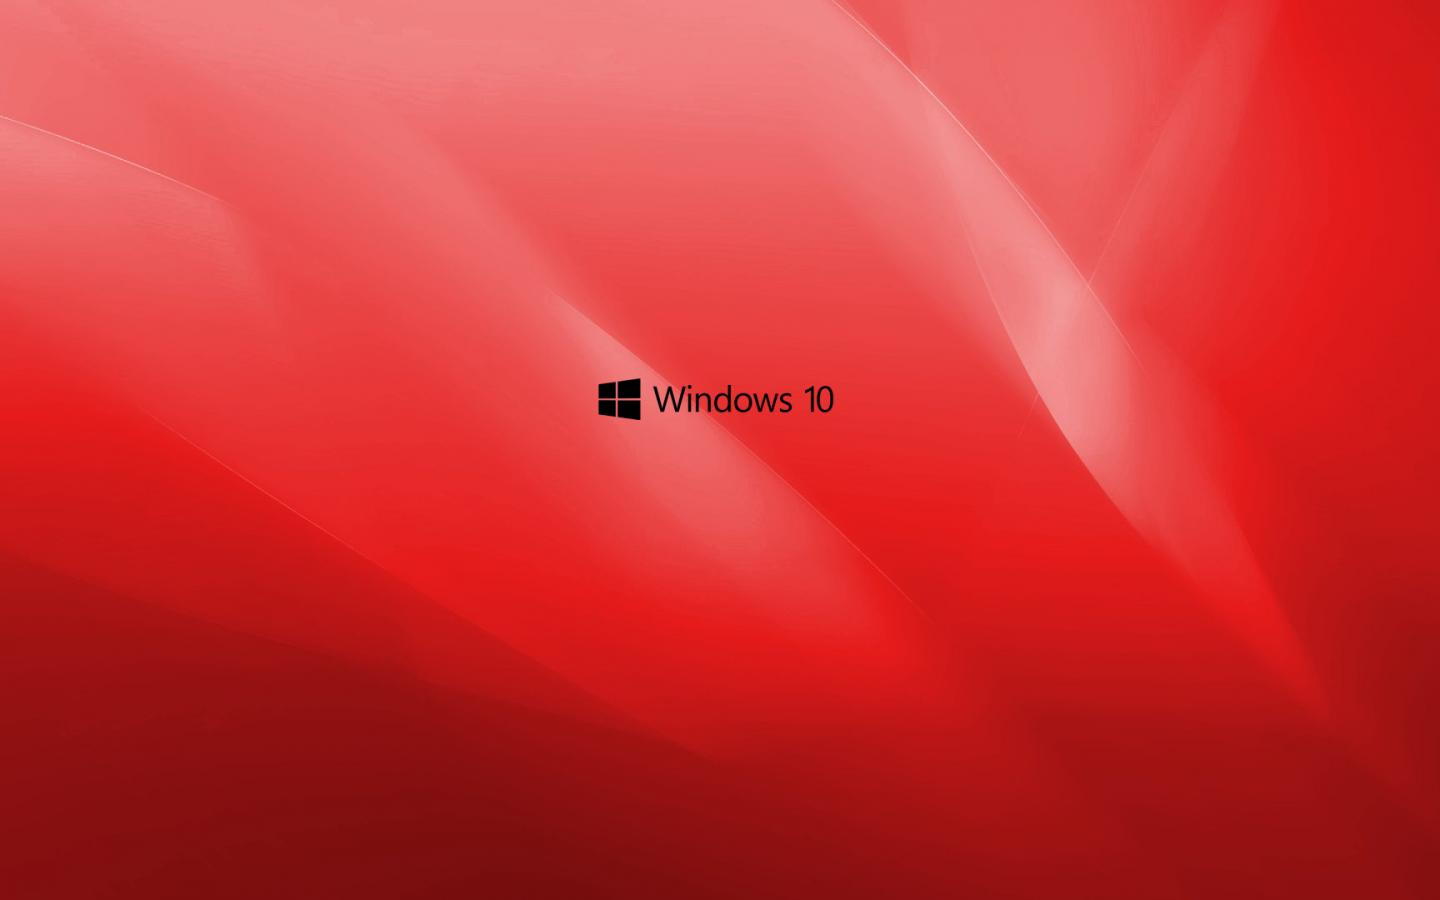 Windows 10 Wallpaper Red With Black Logo